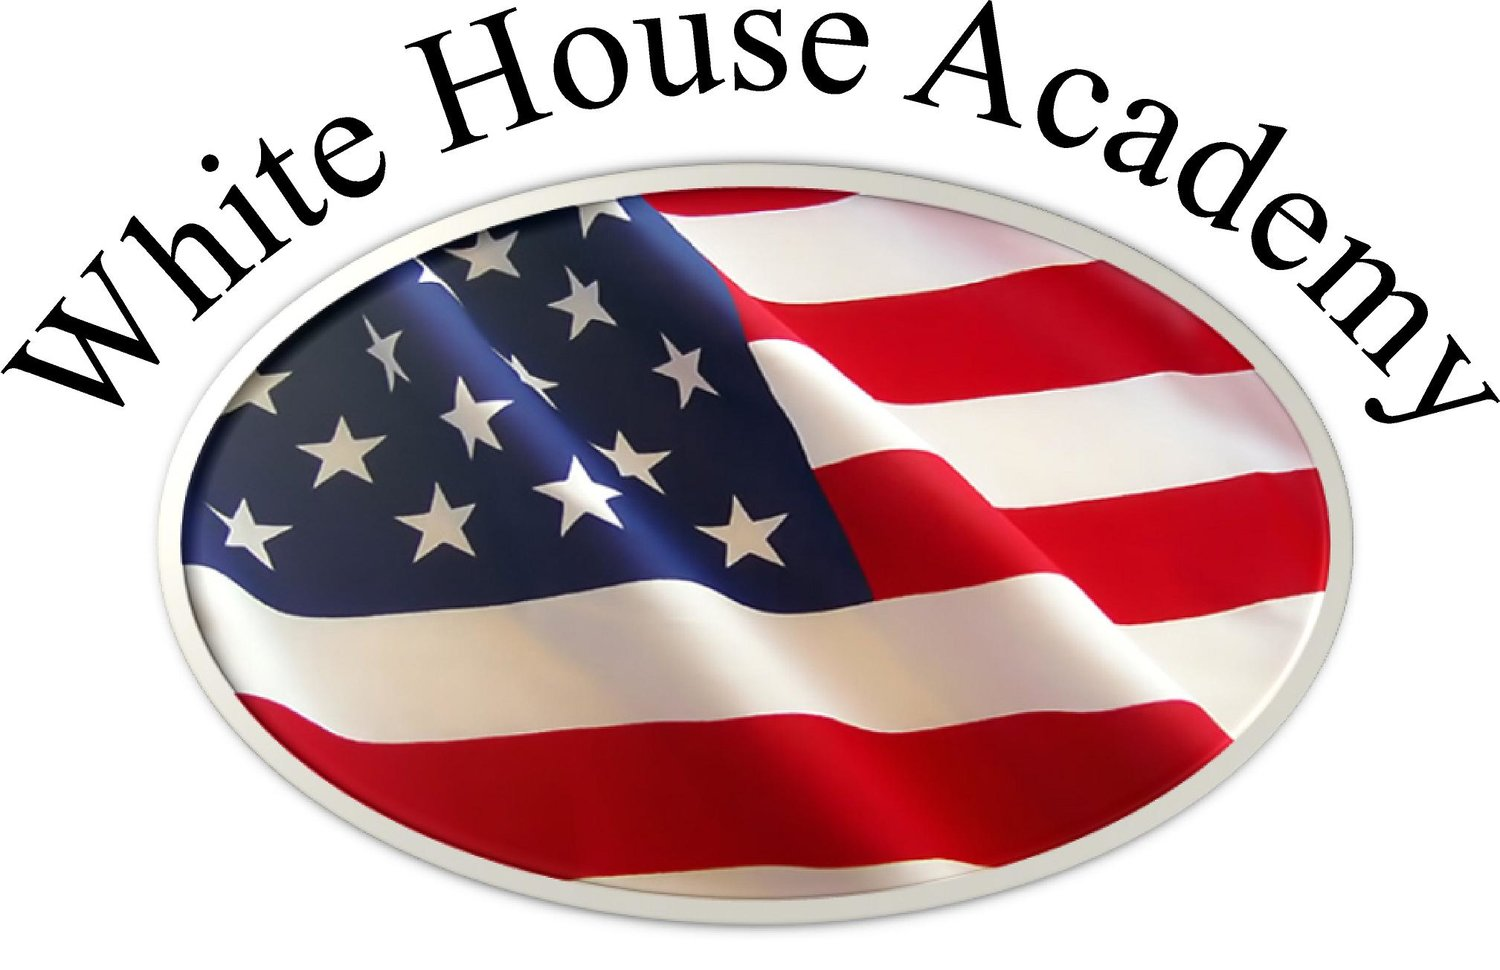 White House Academy